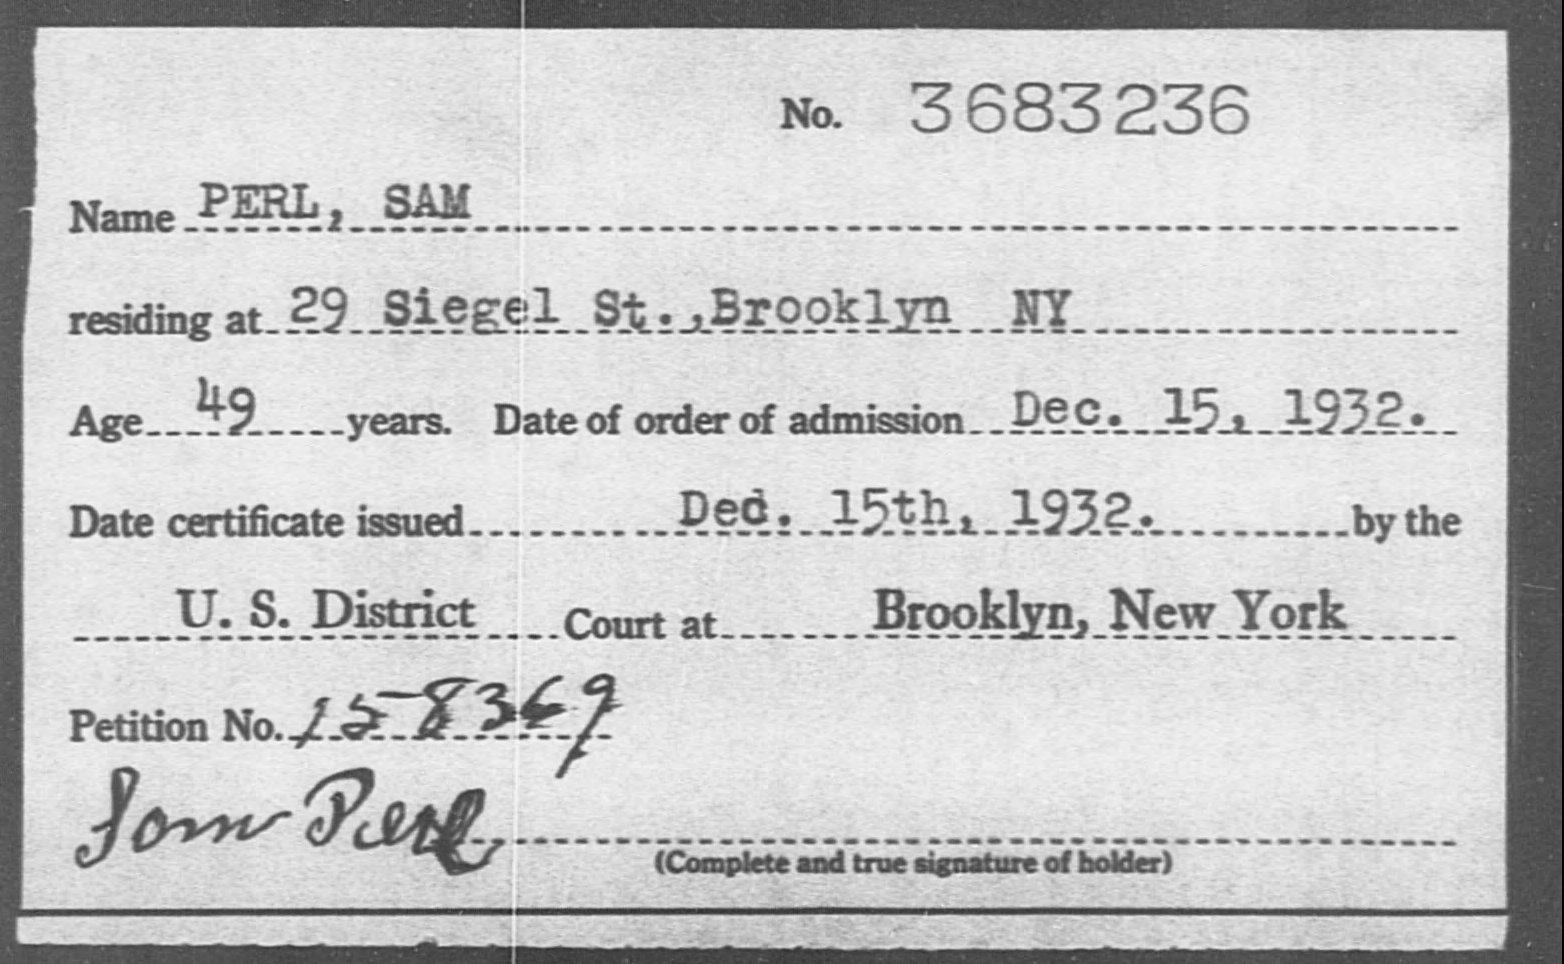 PERL, SAM - Born: [BLANK], Naturalized: 1932